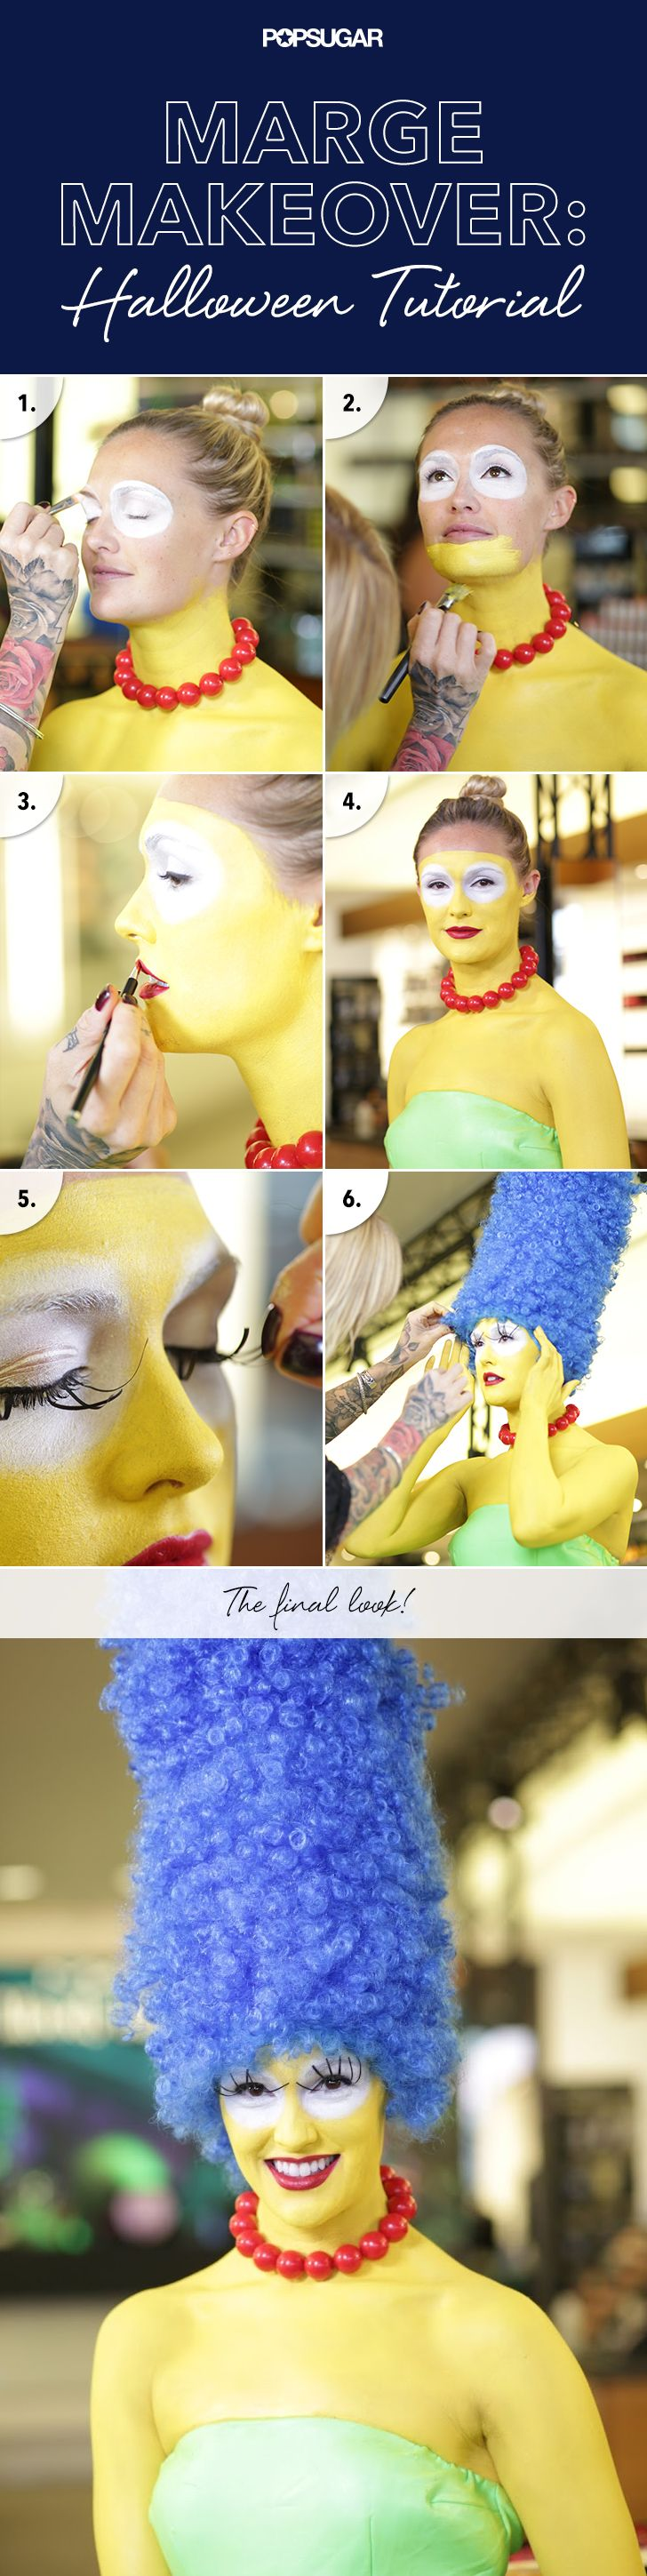 Marge Simpson for #Halloween? This is a fun one!